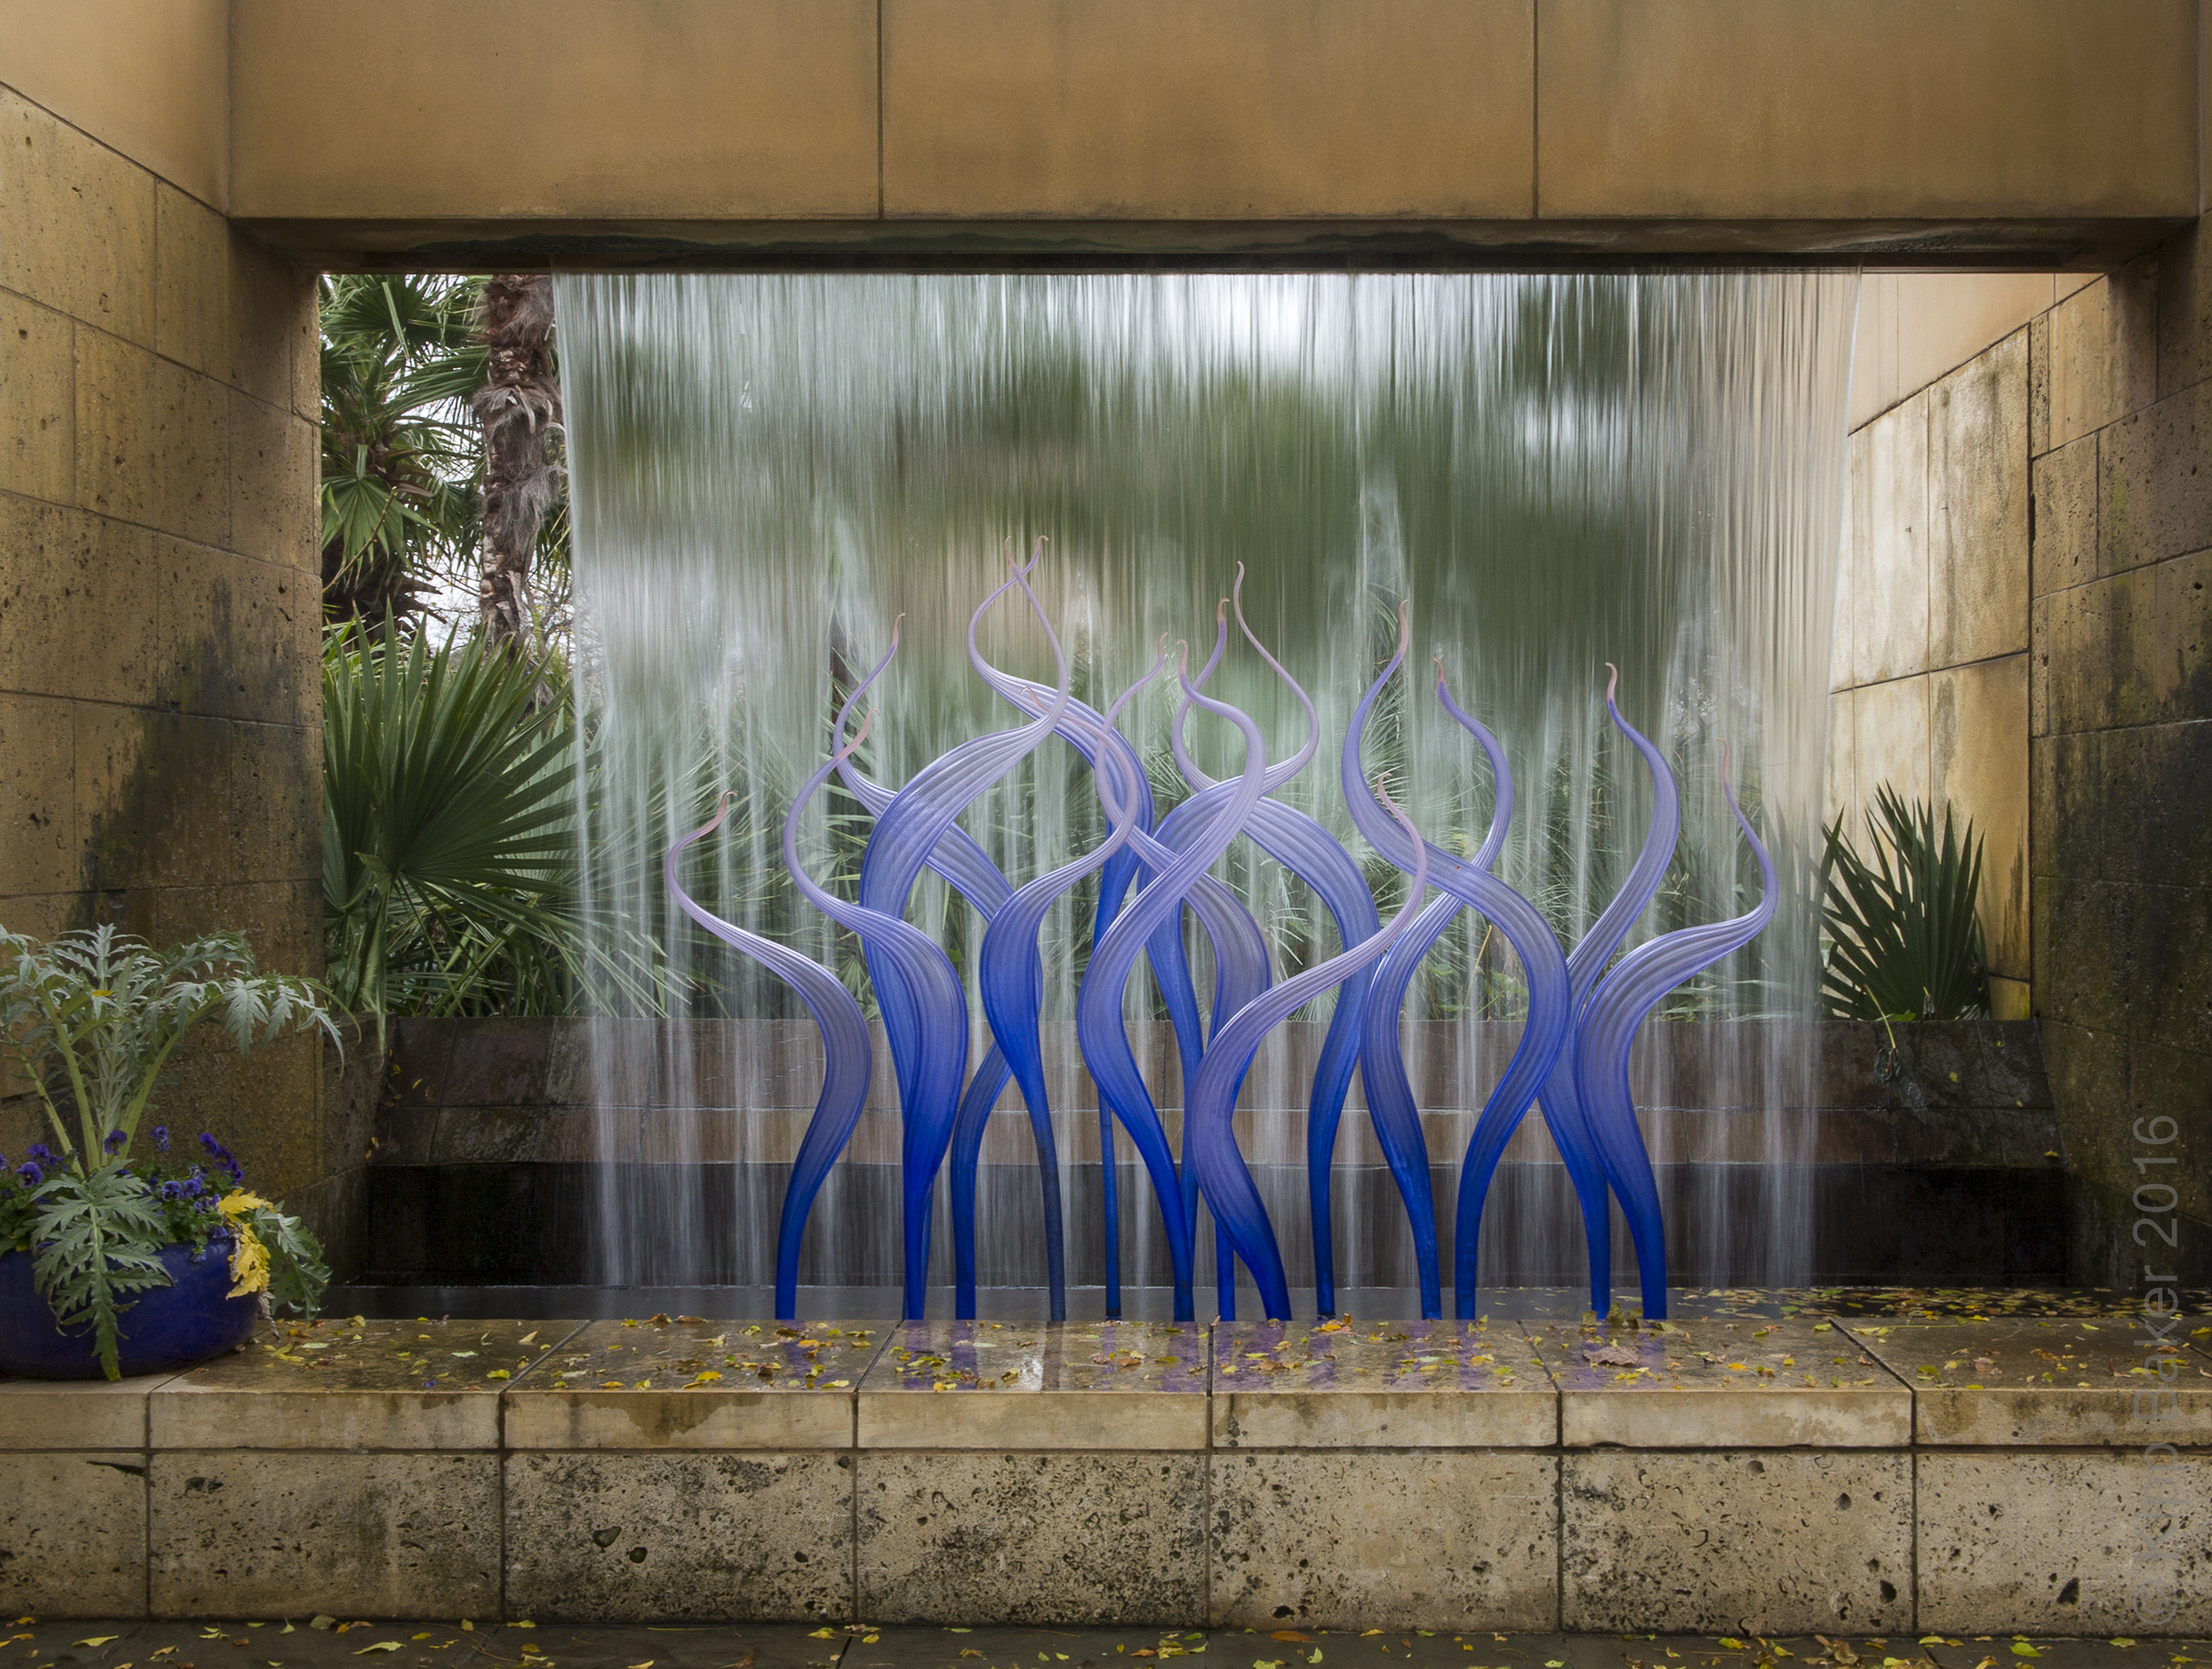 Chihuly Glass installation with waterfall at Dallas Arboretum Copyright © Kipp Baker, All rights reserved.